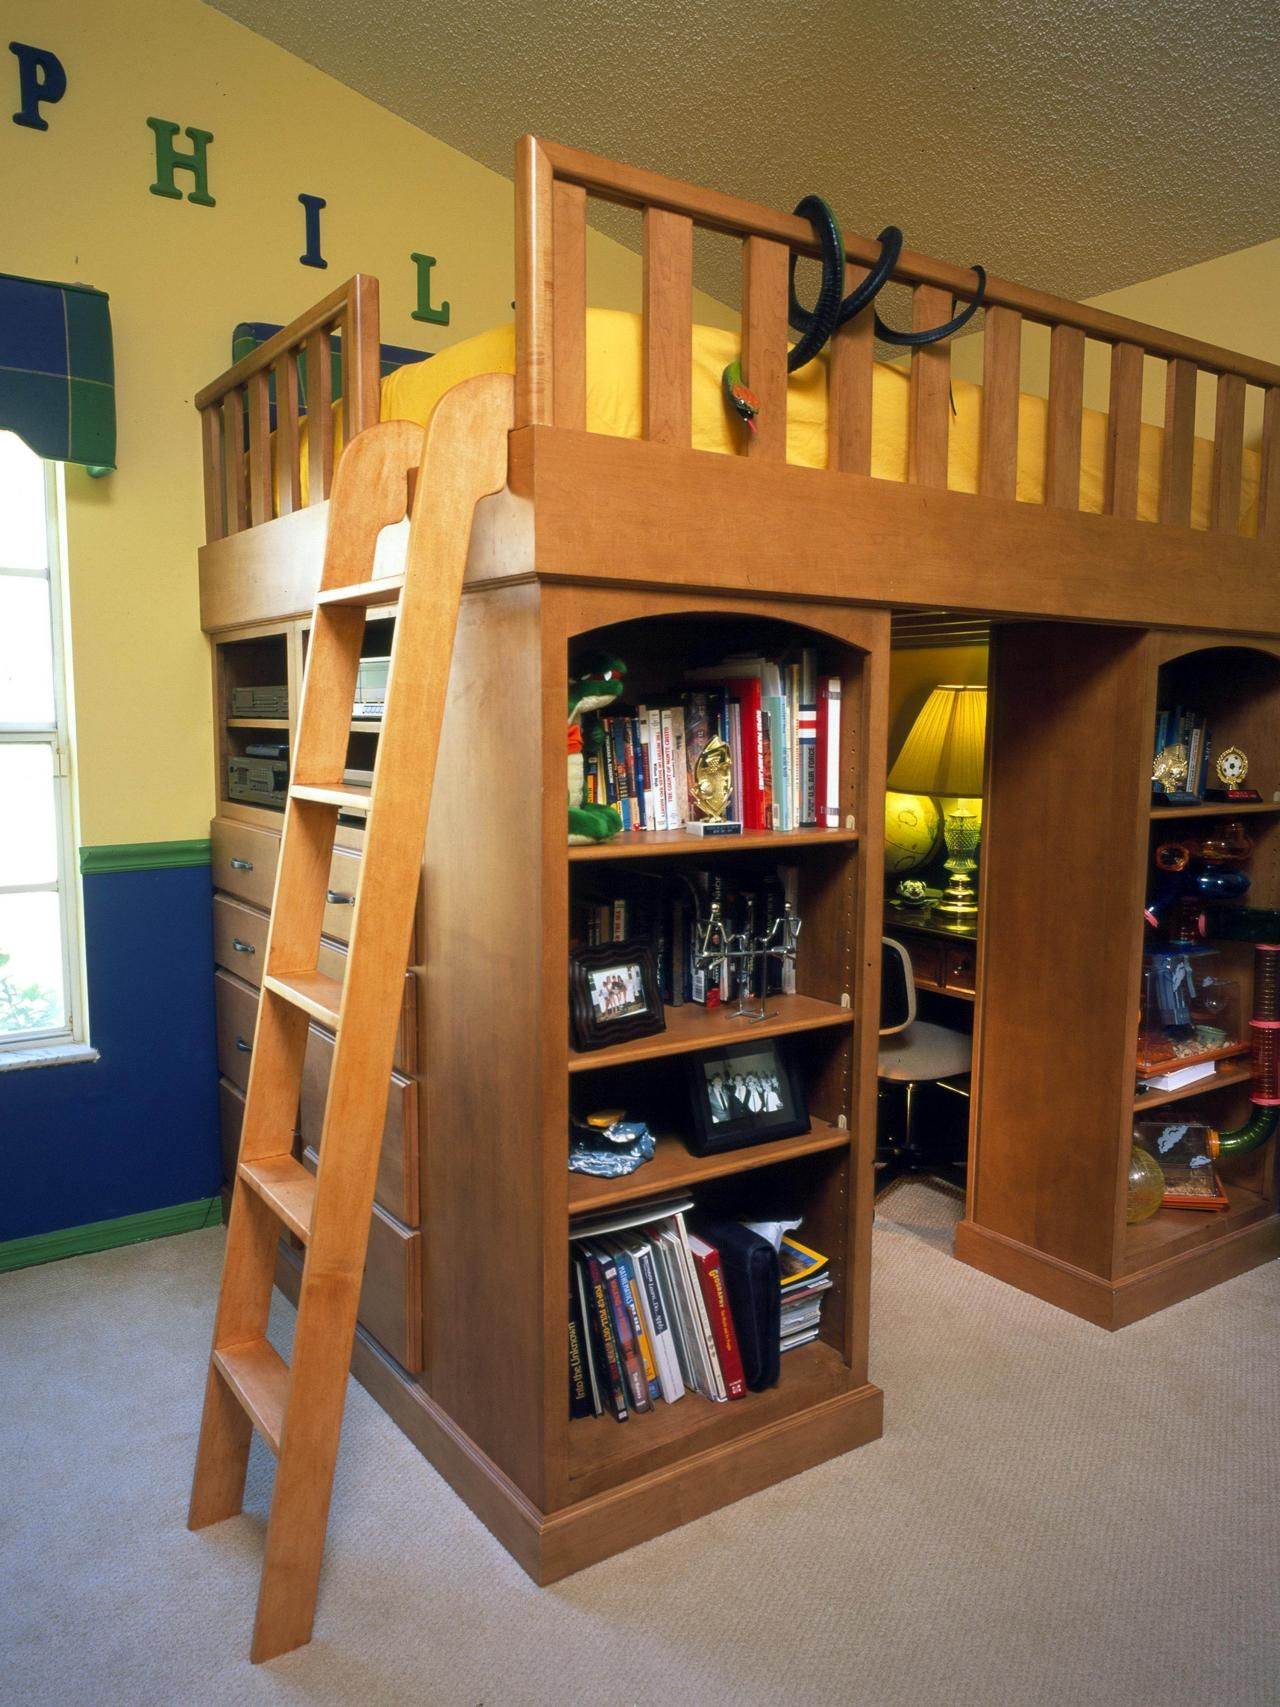 Organizing U0026 Storage Tips For The Pint Size Set | Kids Room Ideas For  Playroom